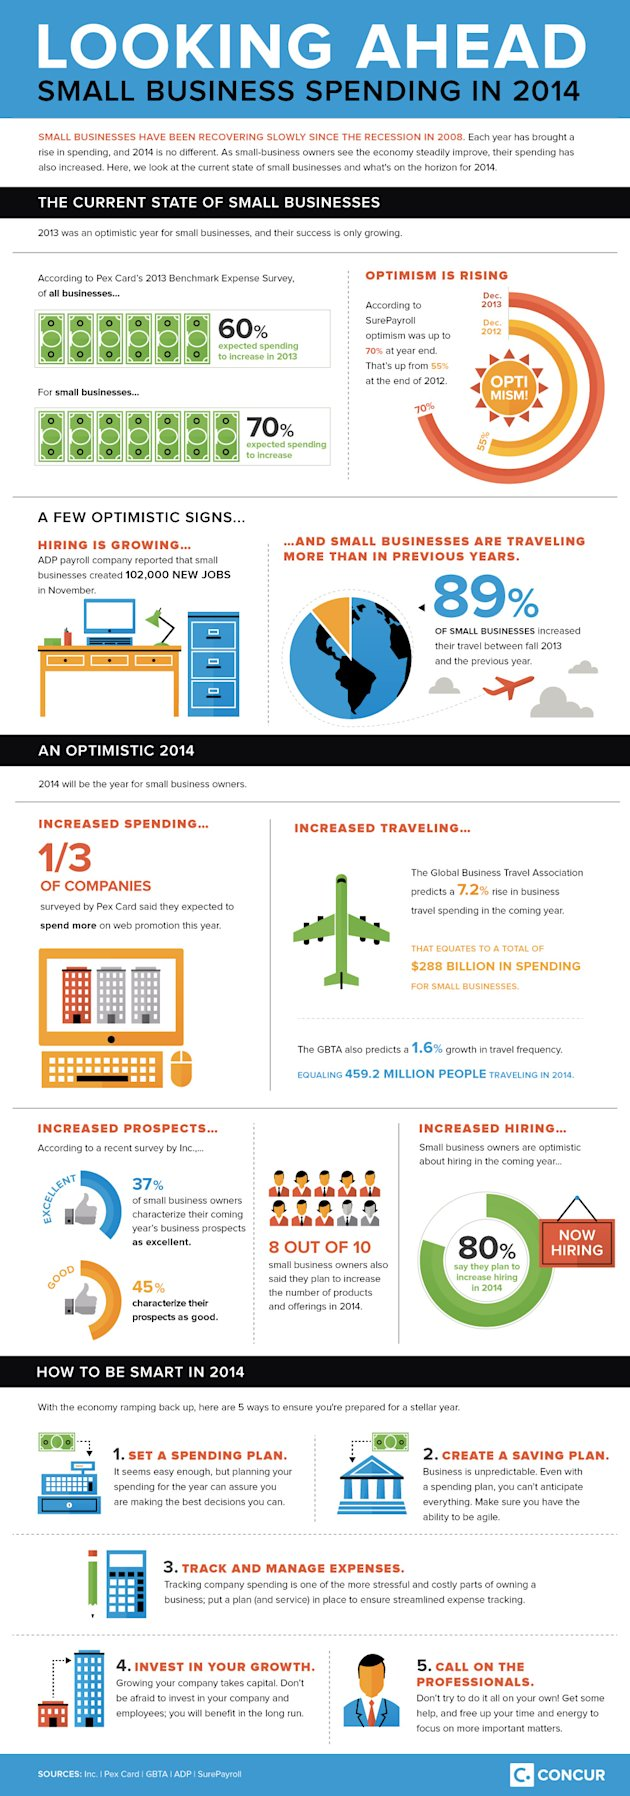 How to Be Smart About Your Spending in 2014 (Infographic)